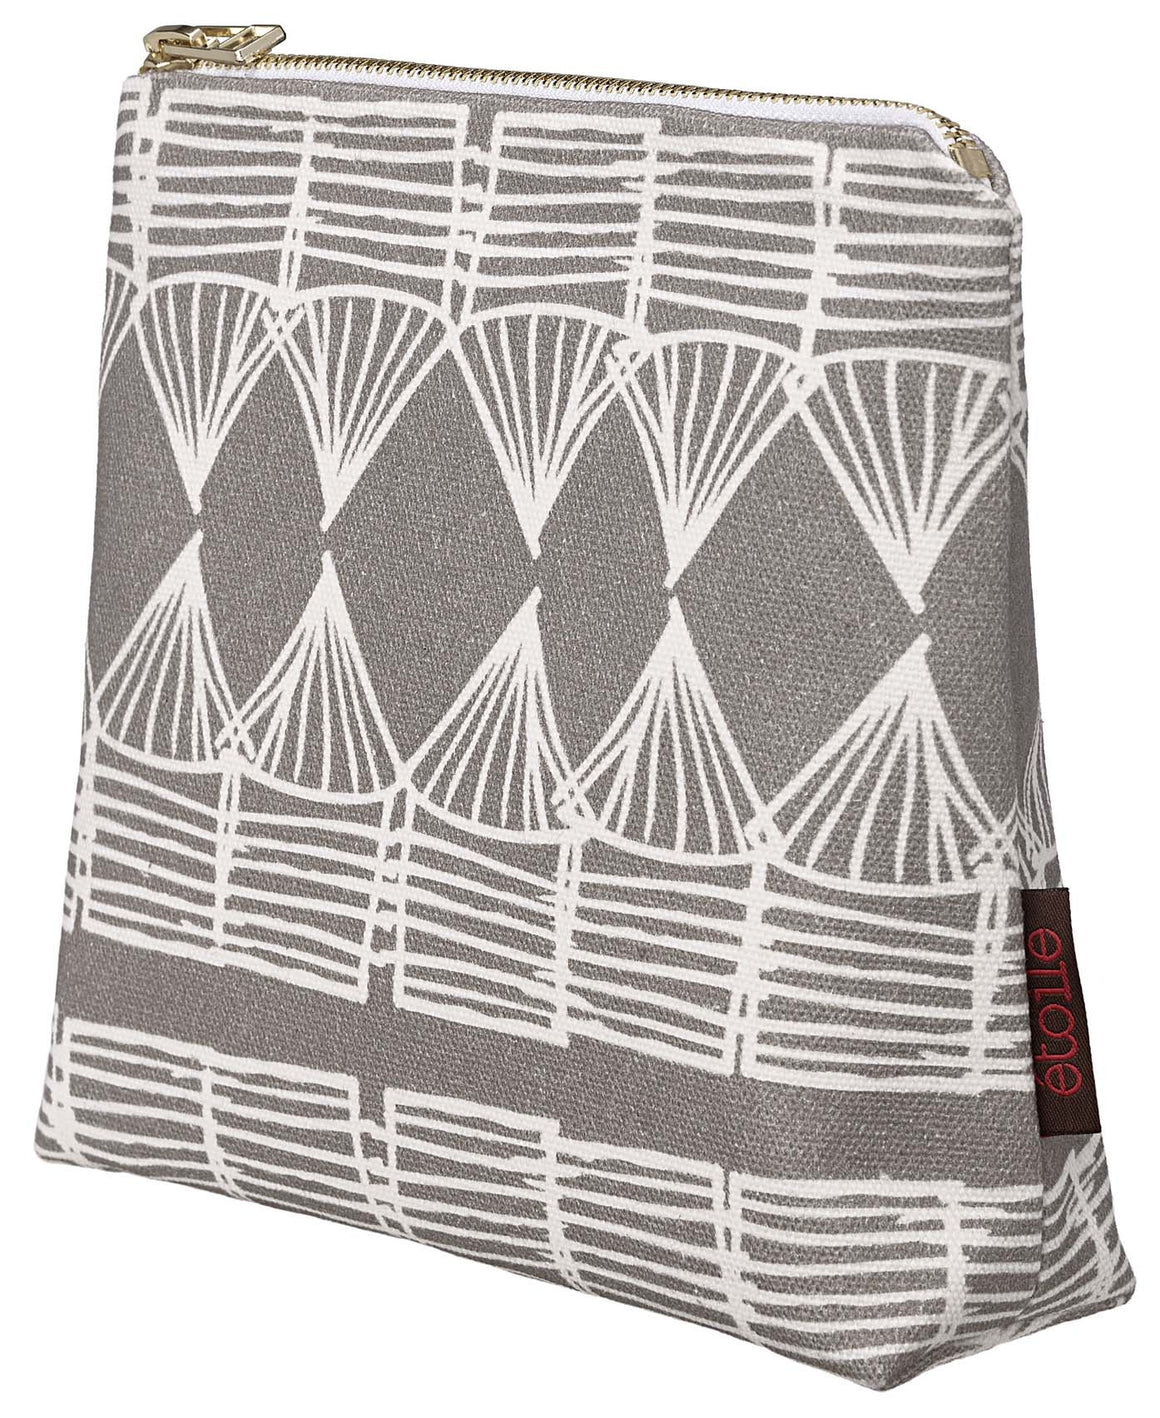 Tiki Huts Pattern Cotton Canvas Cosmetic Bag in Light Dove Grey